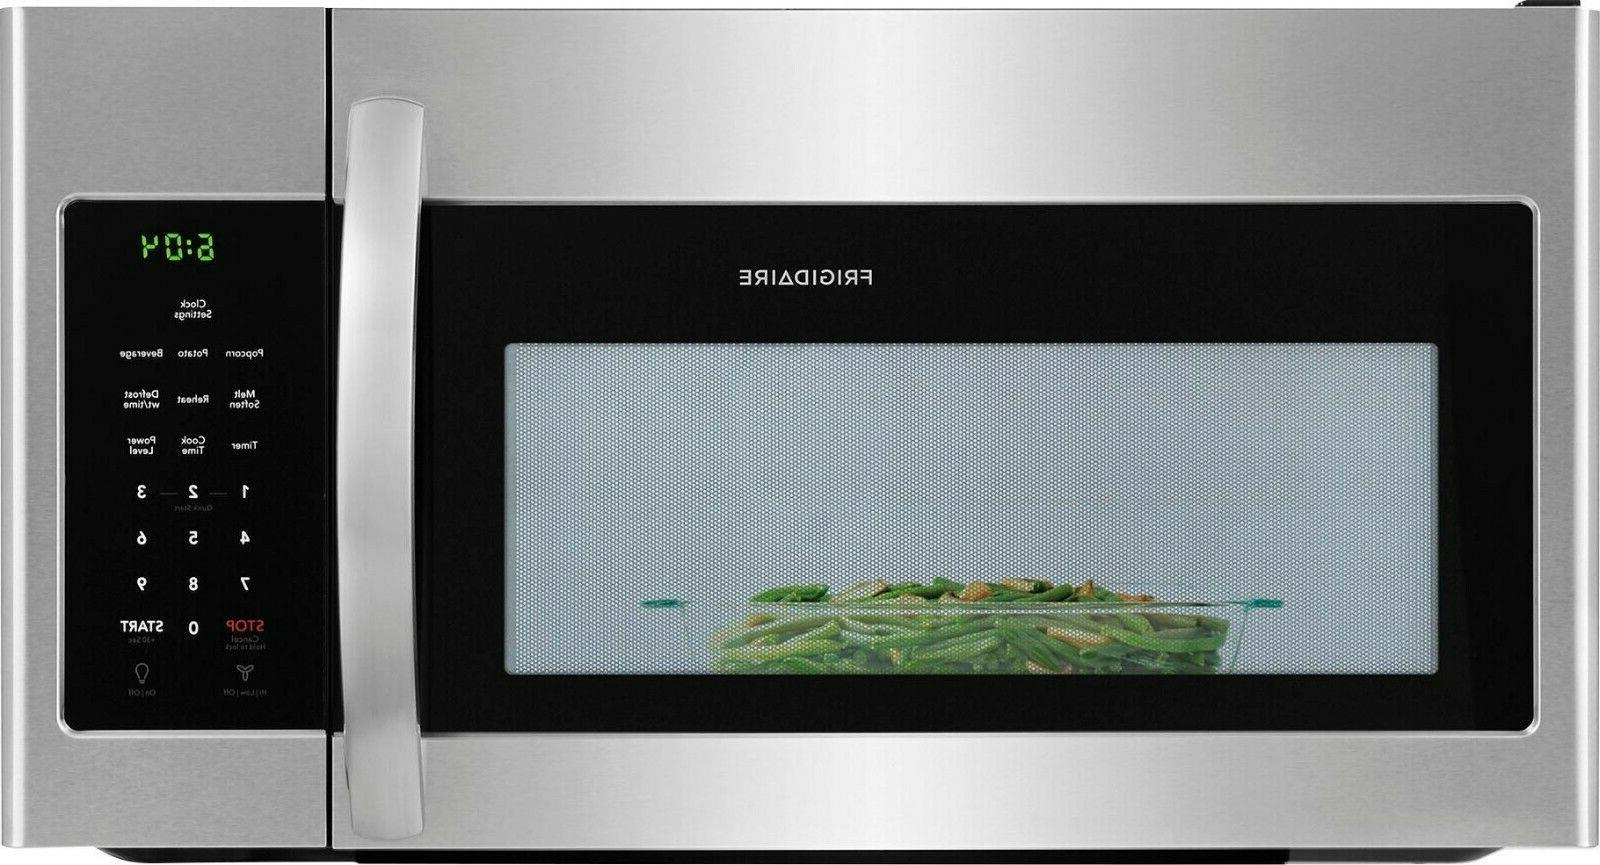 Frigidaire 30 the Range Microwave Multi-Stage Cooking,FFMV1645TS